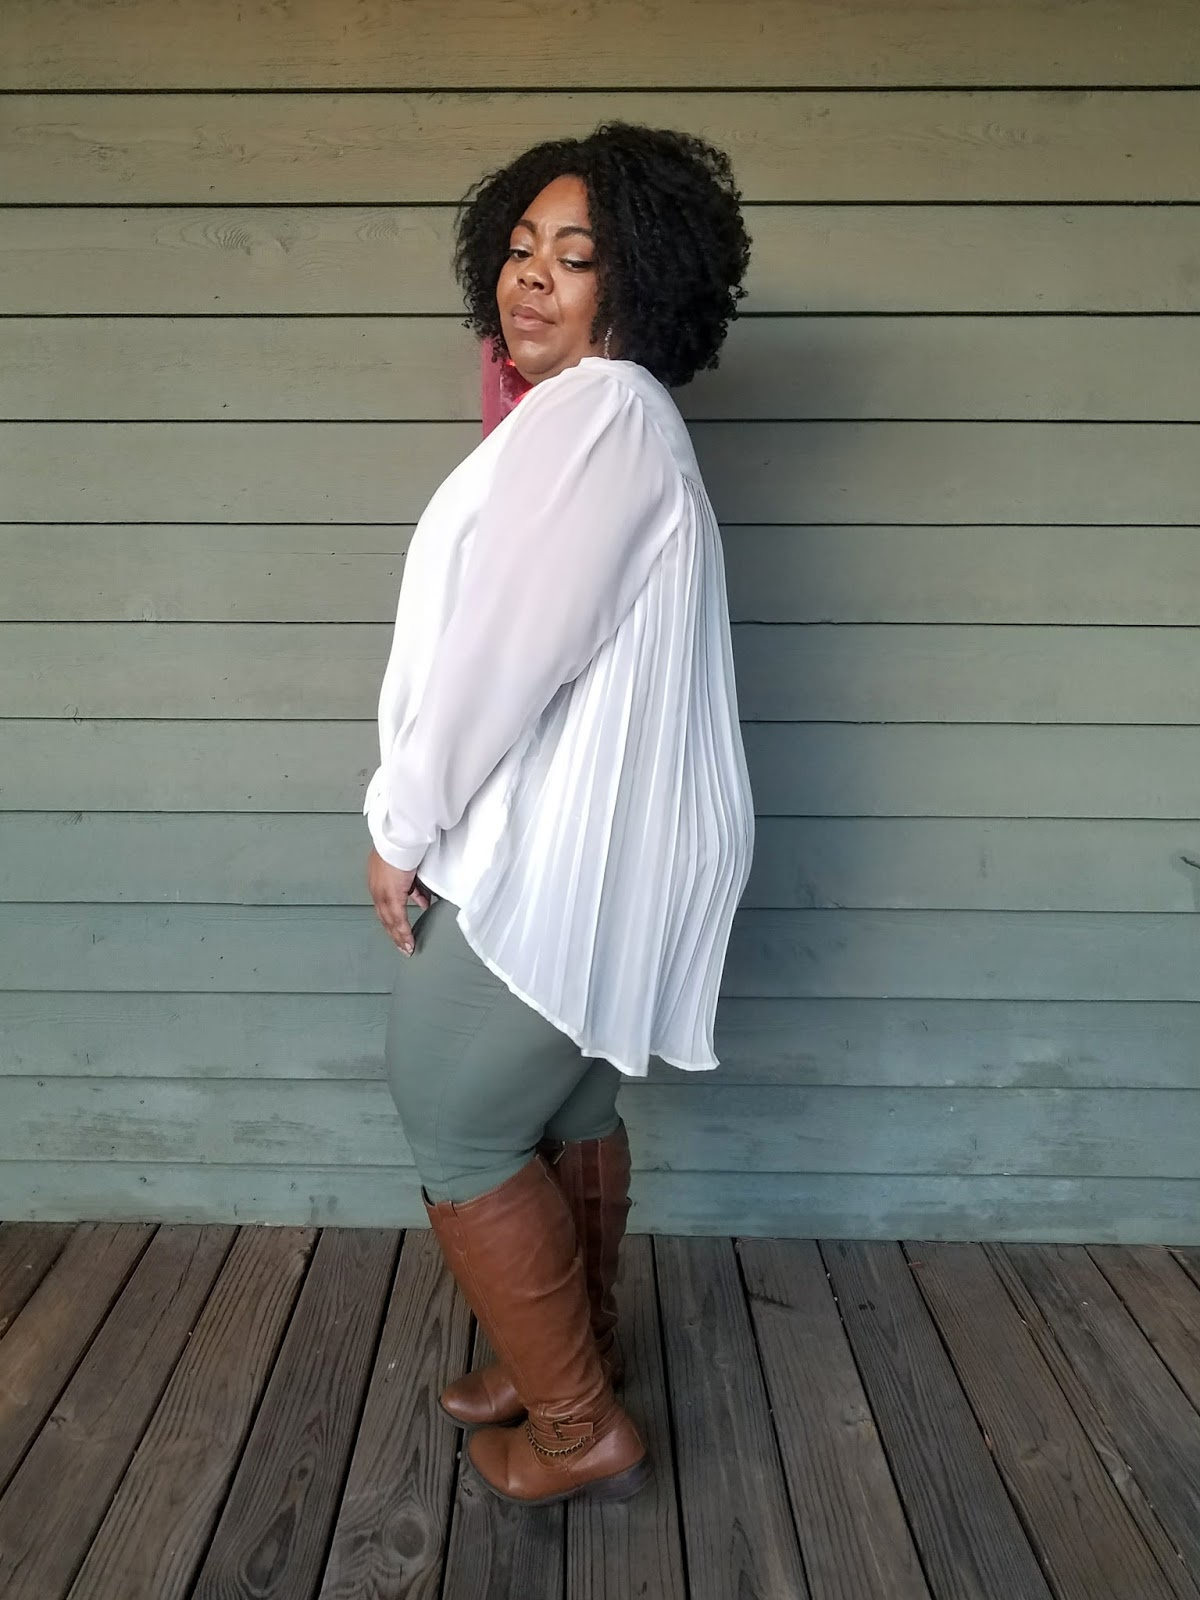 plus size, curvy model, flowy blouse, tall boots, jeggings, kinky natural hair